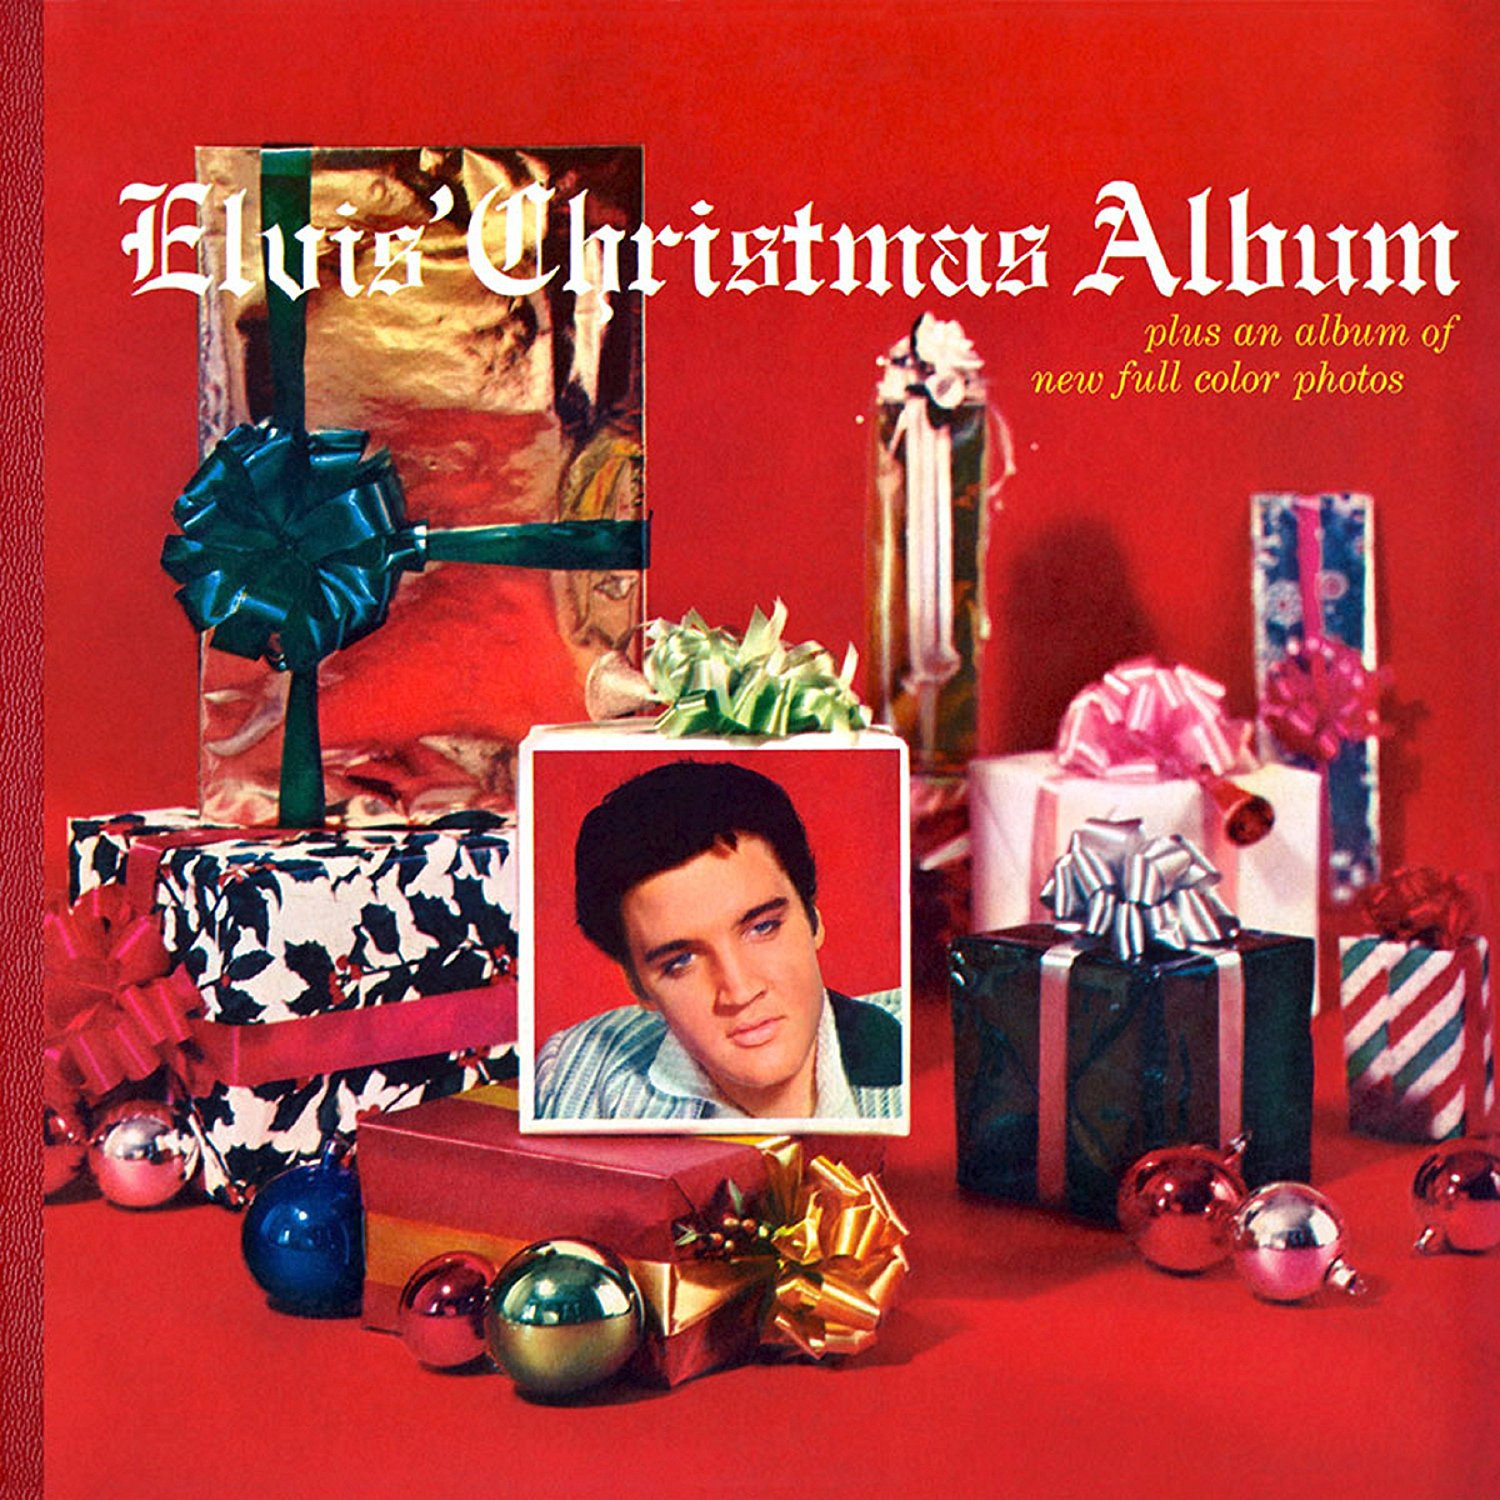 10 Best Christmas Albums to Own on Vinyl — Vinyl Me, Please